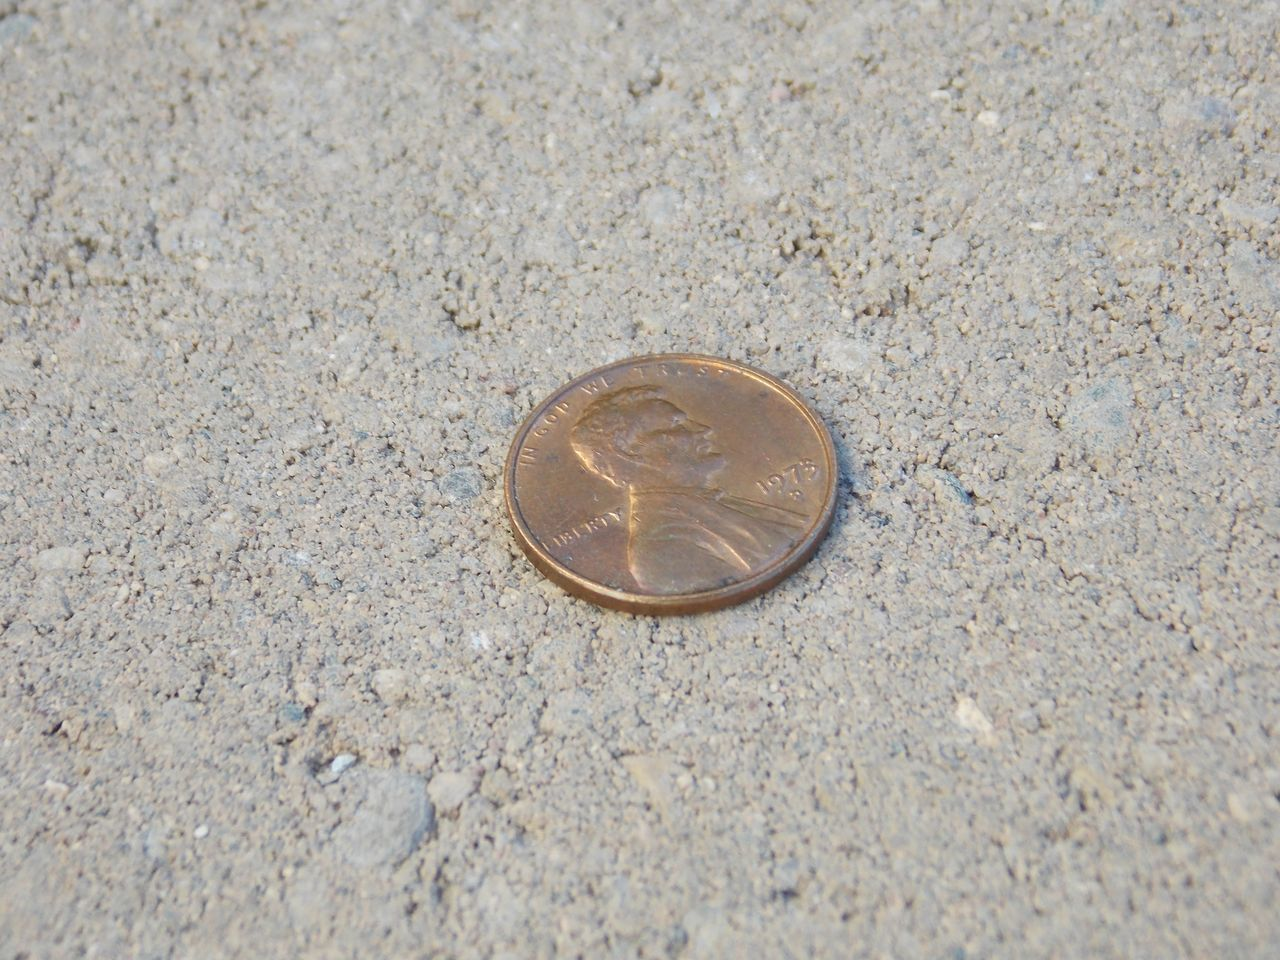 no people, day, high angle view, sand, beach, close-up, coin, outdoors, nature